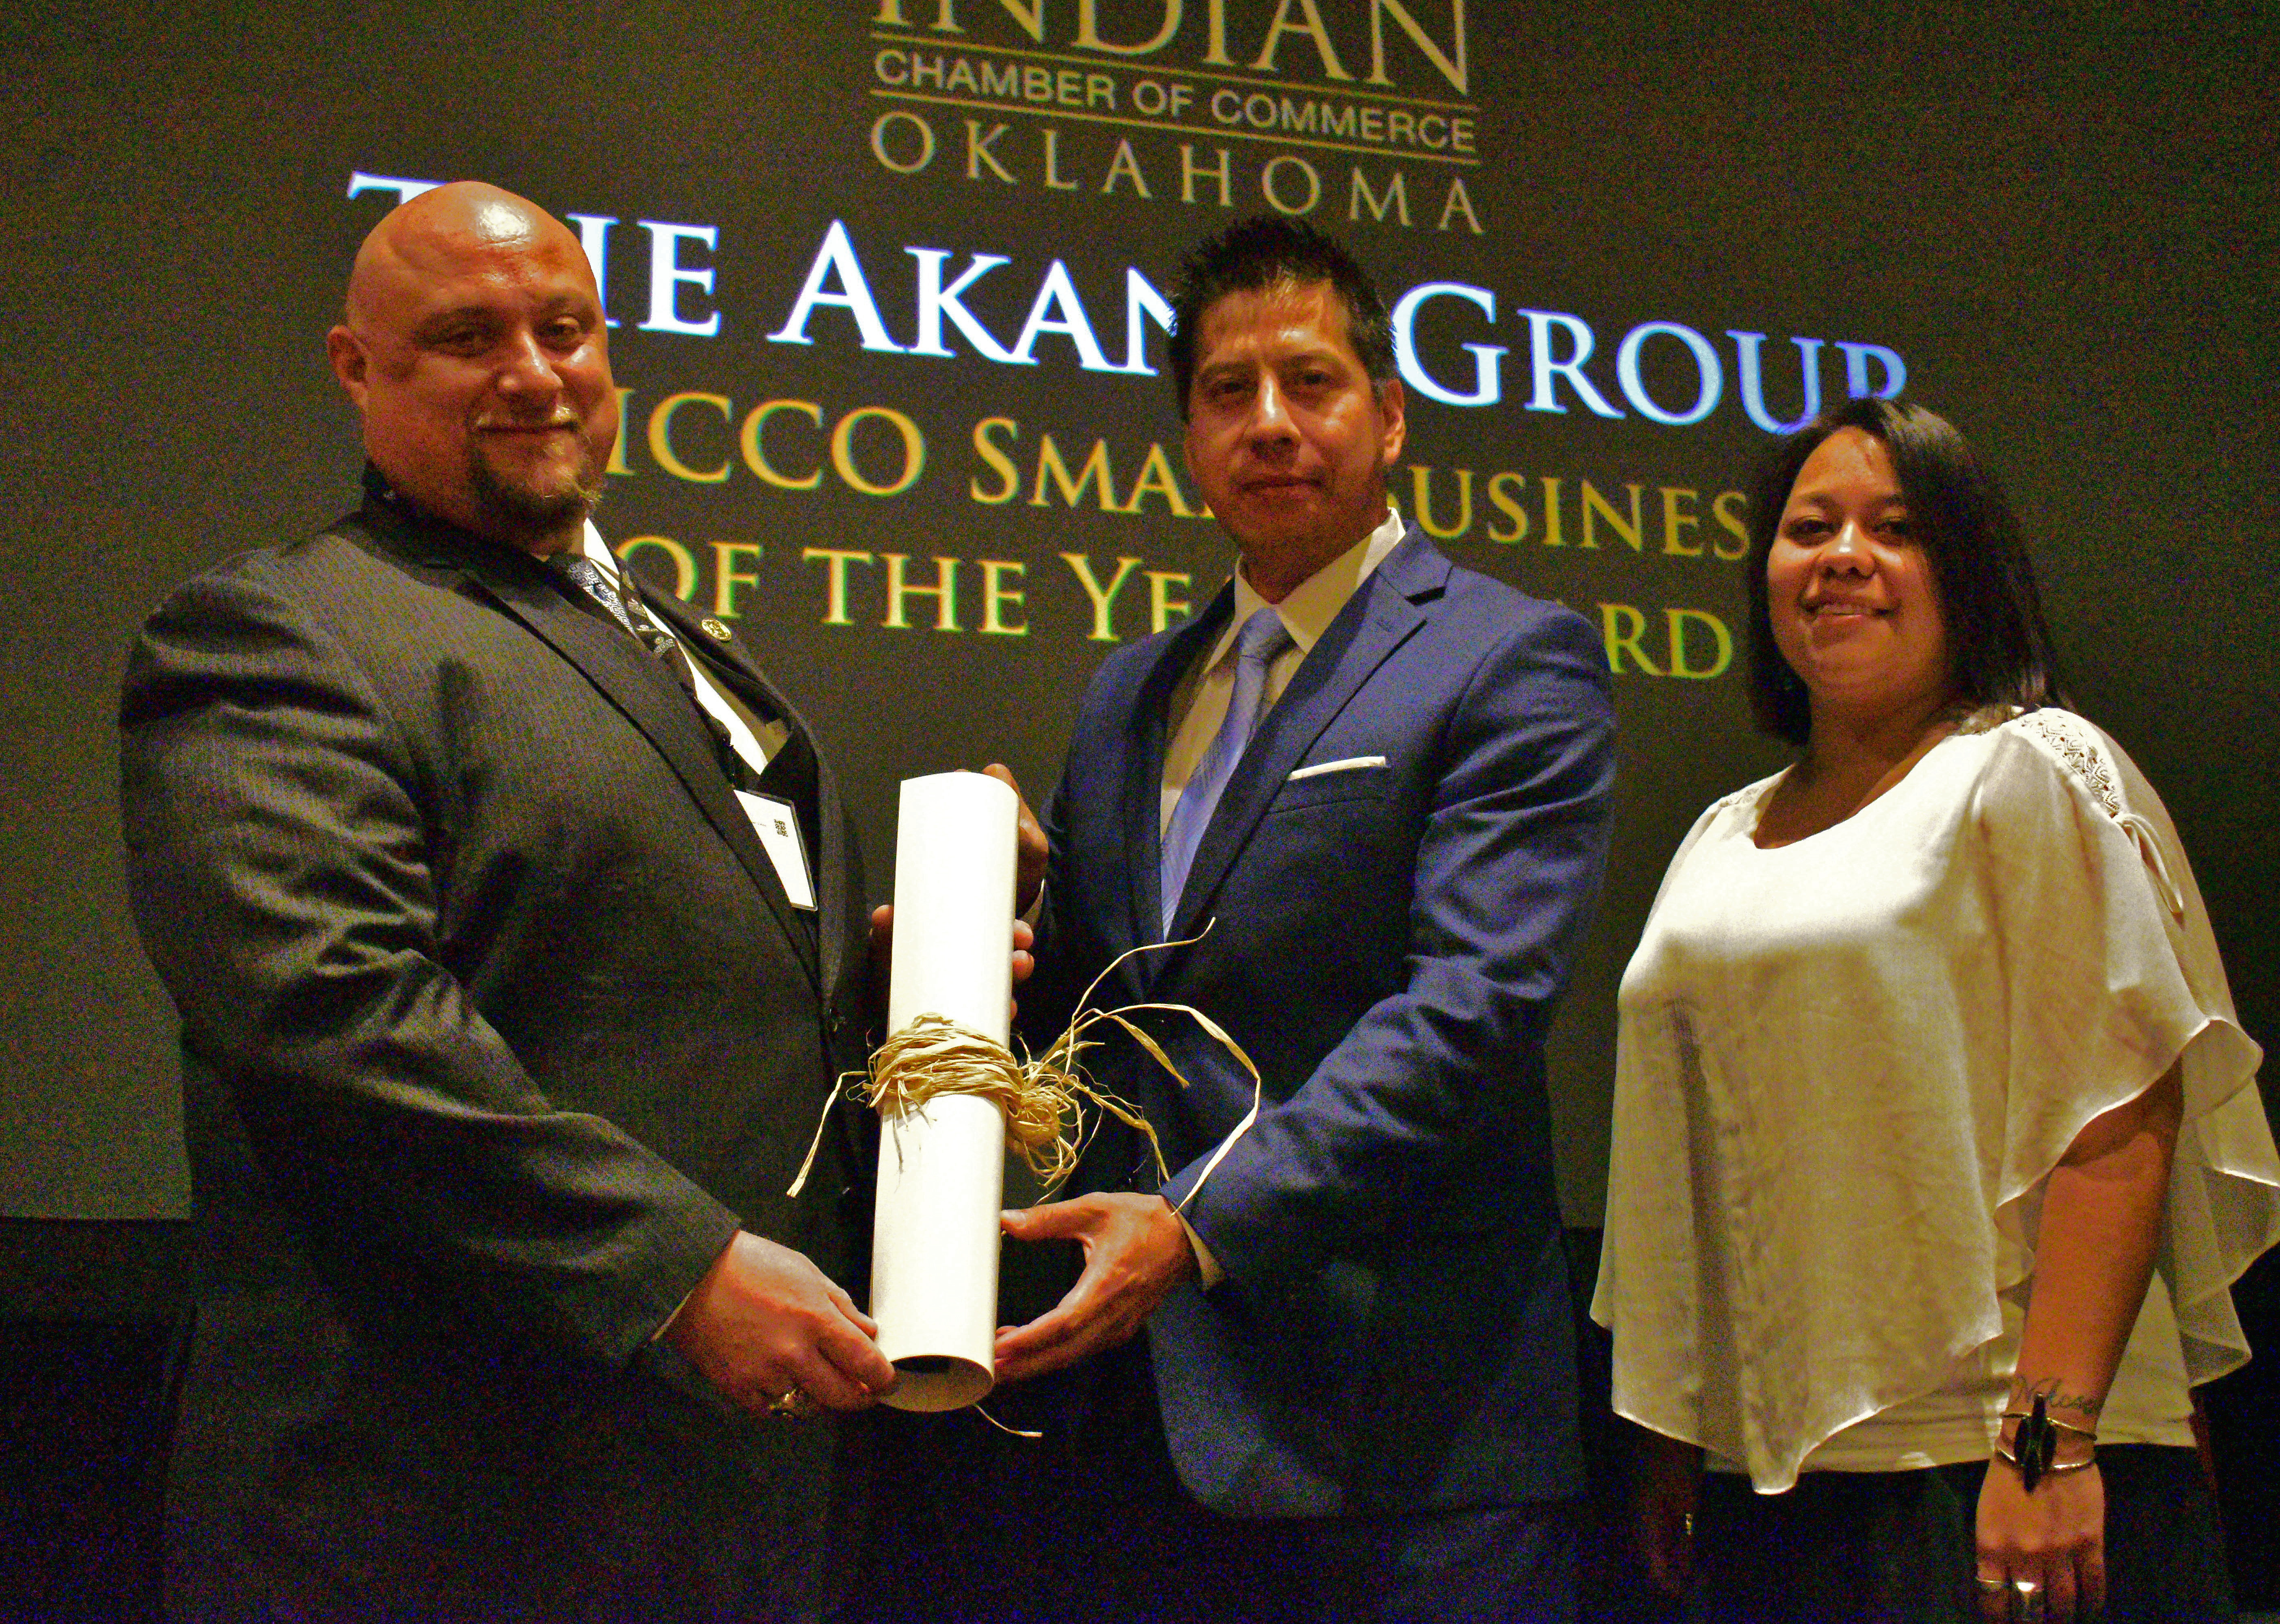 The Akana Group